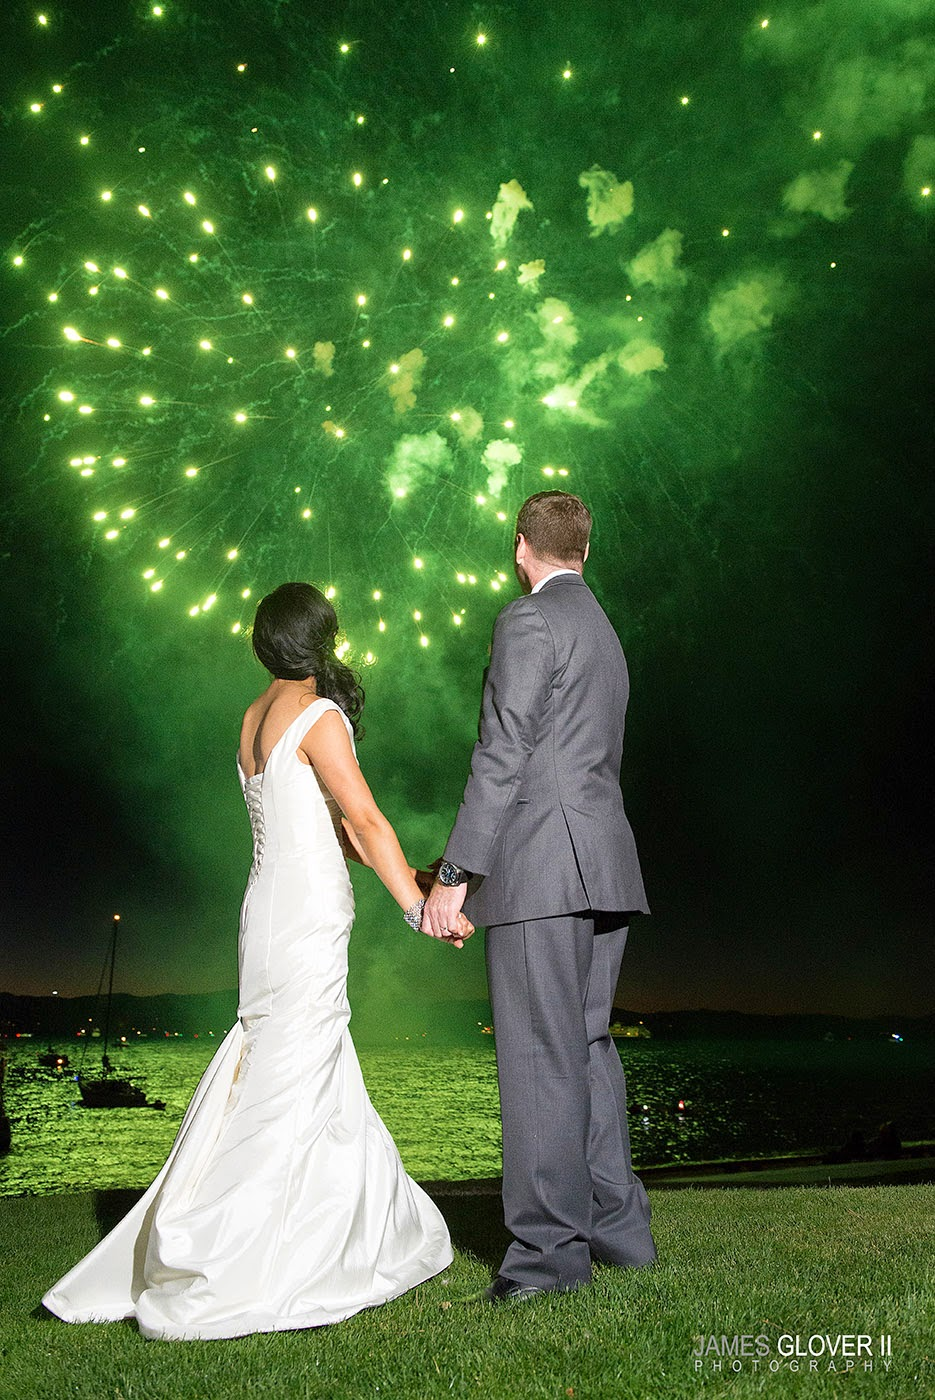 Wedding Fireworks | James Glover Photography | Take the Cake Events